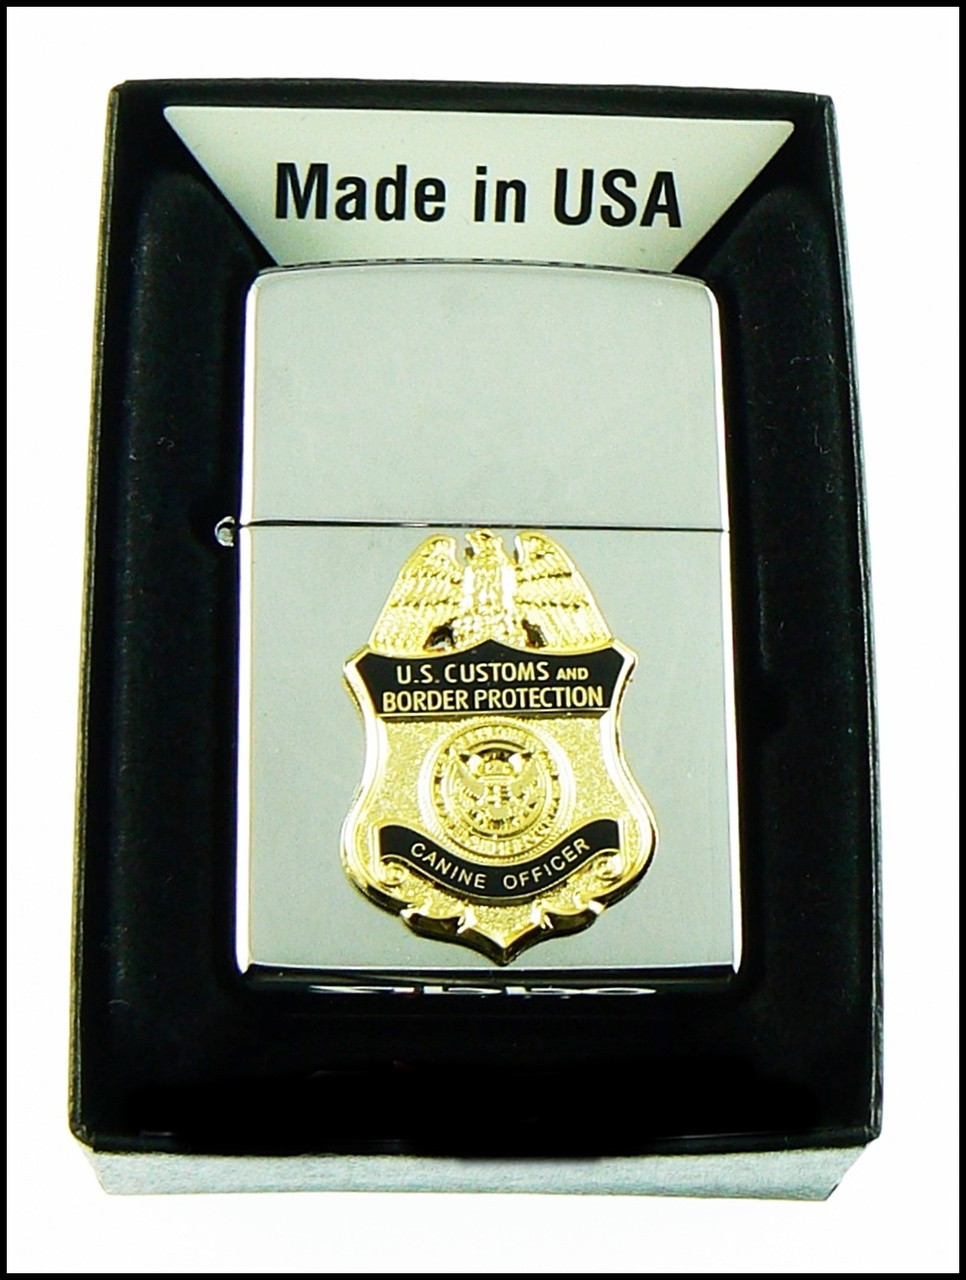 Customs and Border Protection Canine Officer Mini Badge Chrome Cigarette Lighters